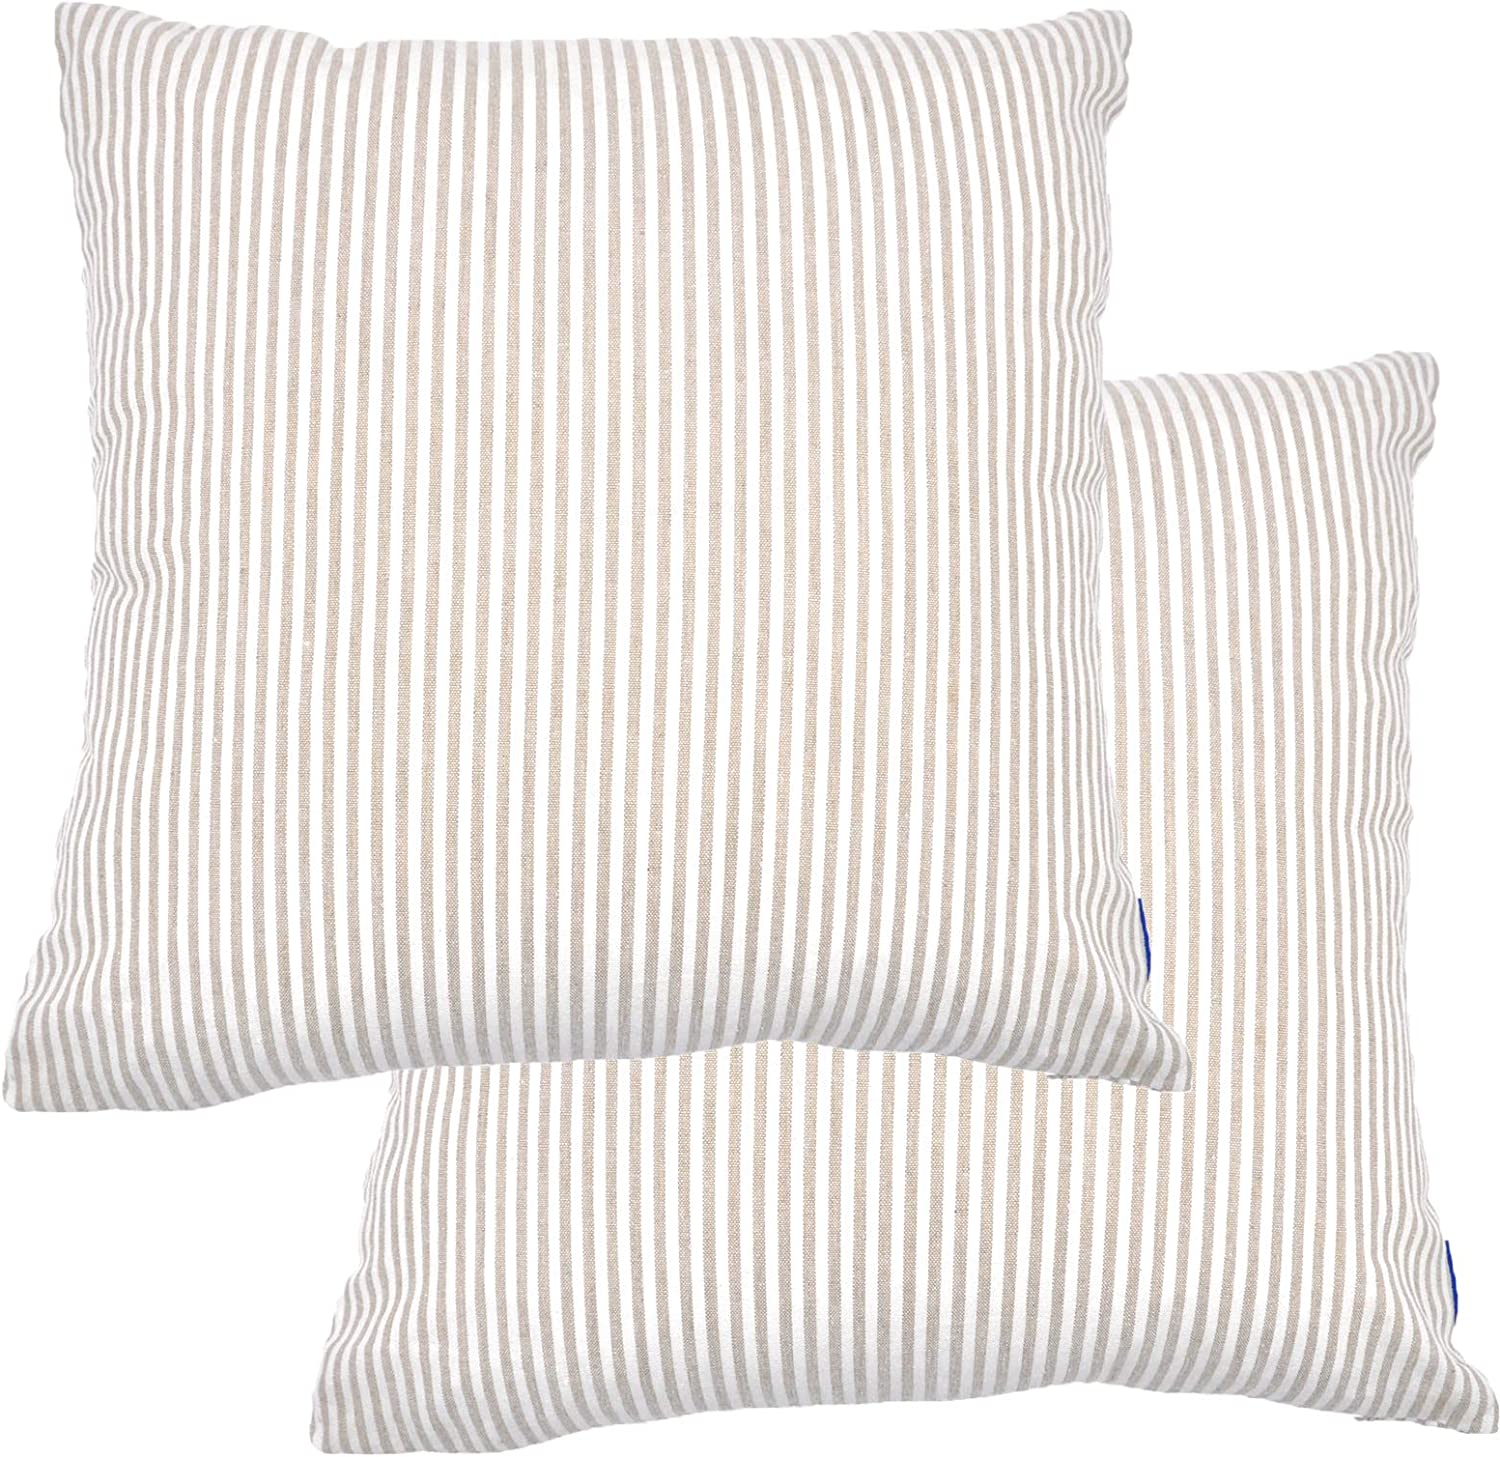 JES&MEDIS Pack of 2 Pillowcase Cotton Striped Home Decor Square Throw Pillow Covers Set for Office Bed Car Club 18 x 18 Inches 45 x 45 cm Beige and White